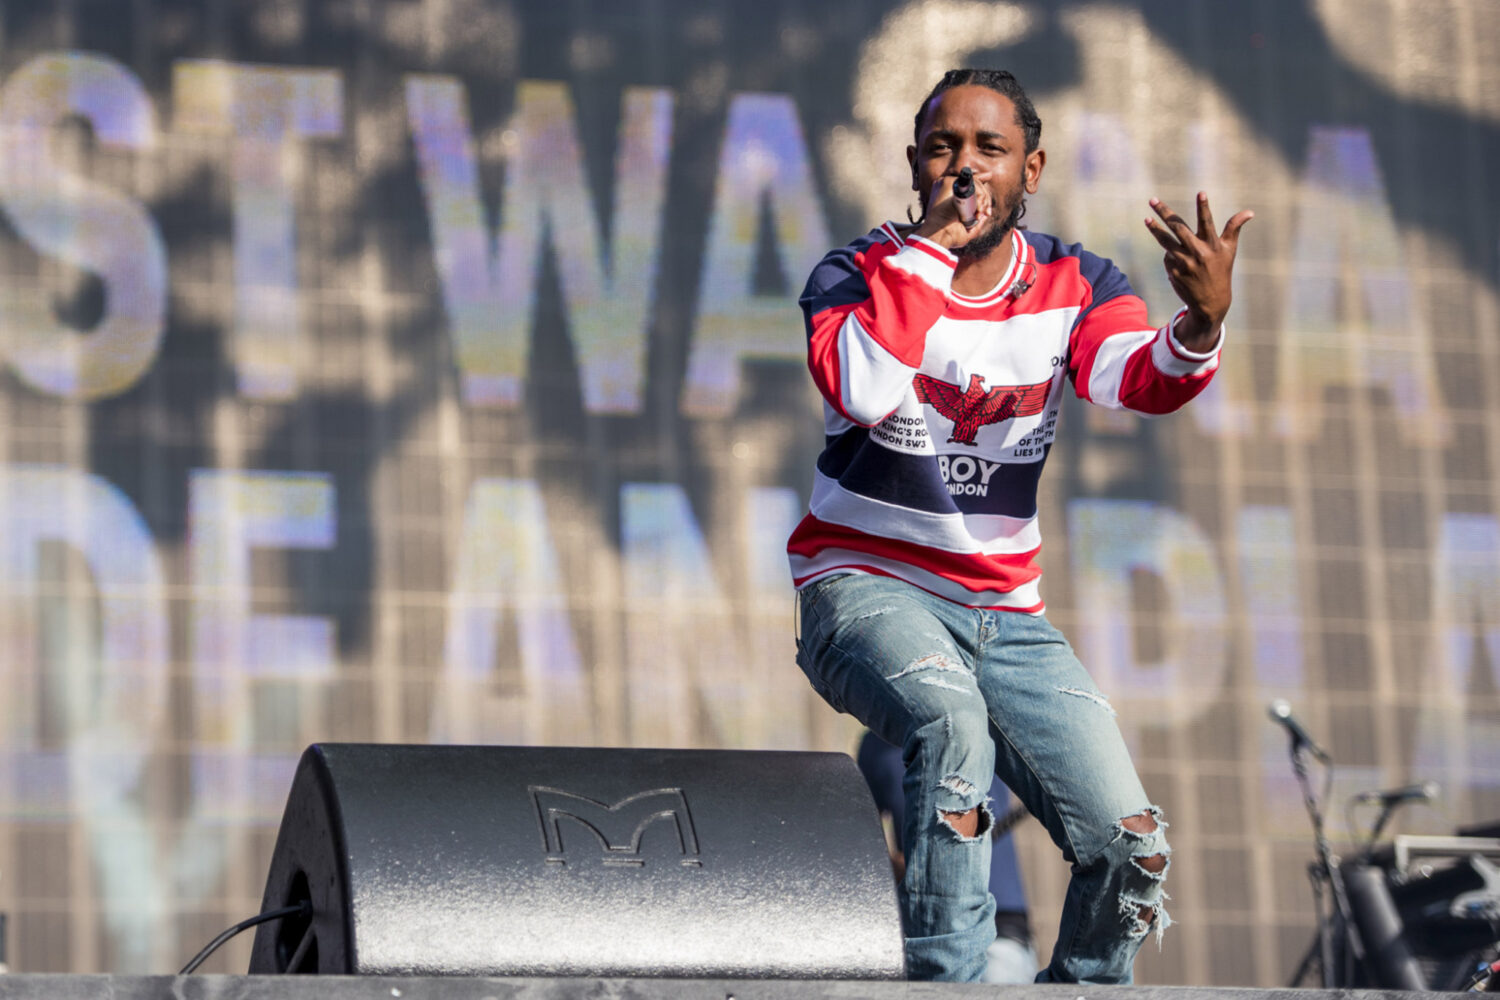 Kendrick Lamar and The Weeknd share 'Pray For Me' from Black Panther soundtrack